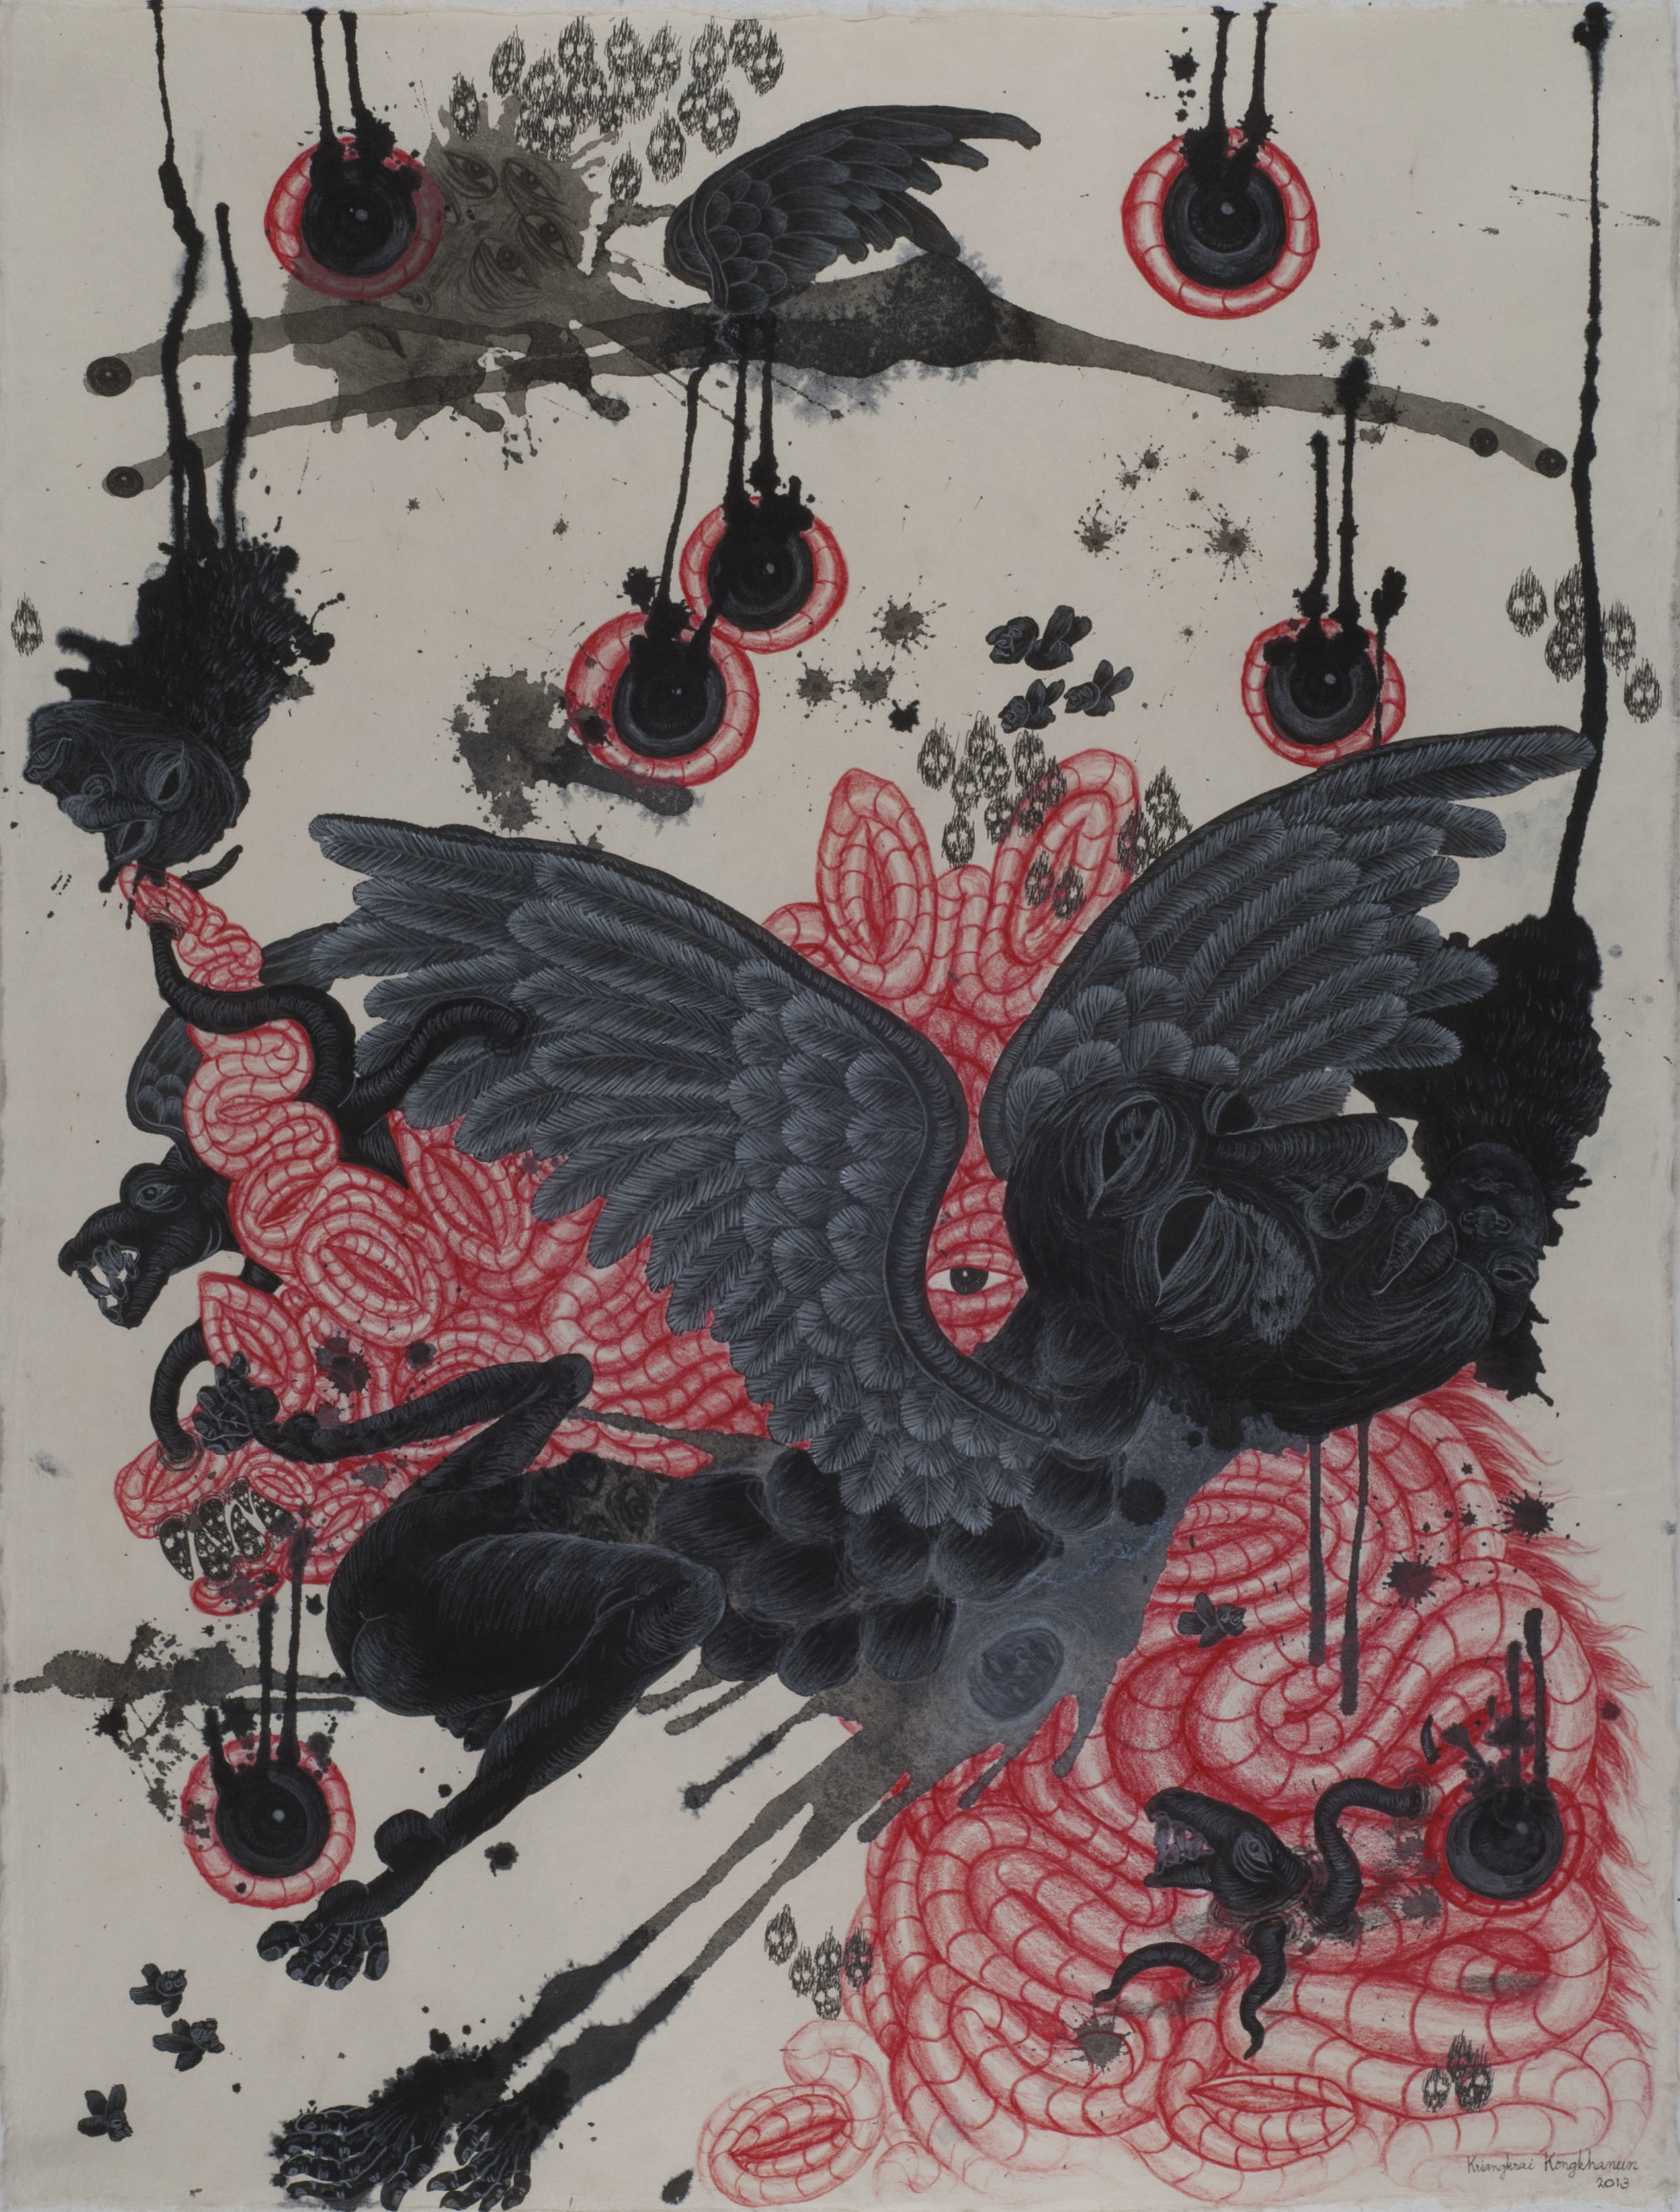 Kriangkrai Kongkhanun    Black Rain  , 2013 Chinese ink, pen, pencil on Thai handmade paper 31.5 x 23.62 inches  /  80 x 60 cm  /  KrK 1